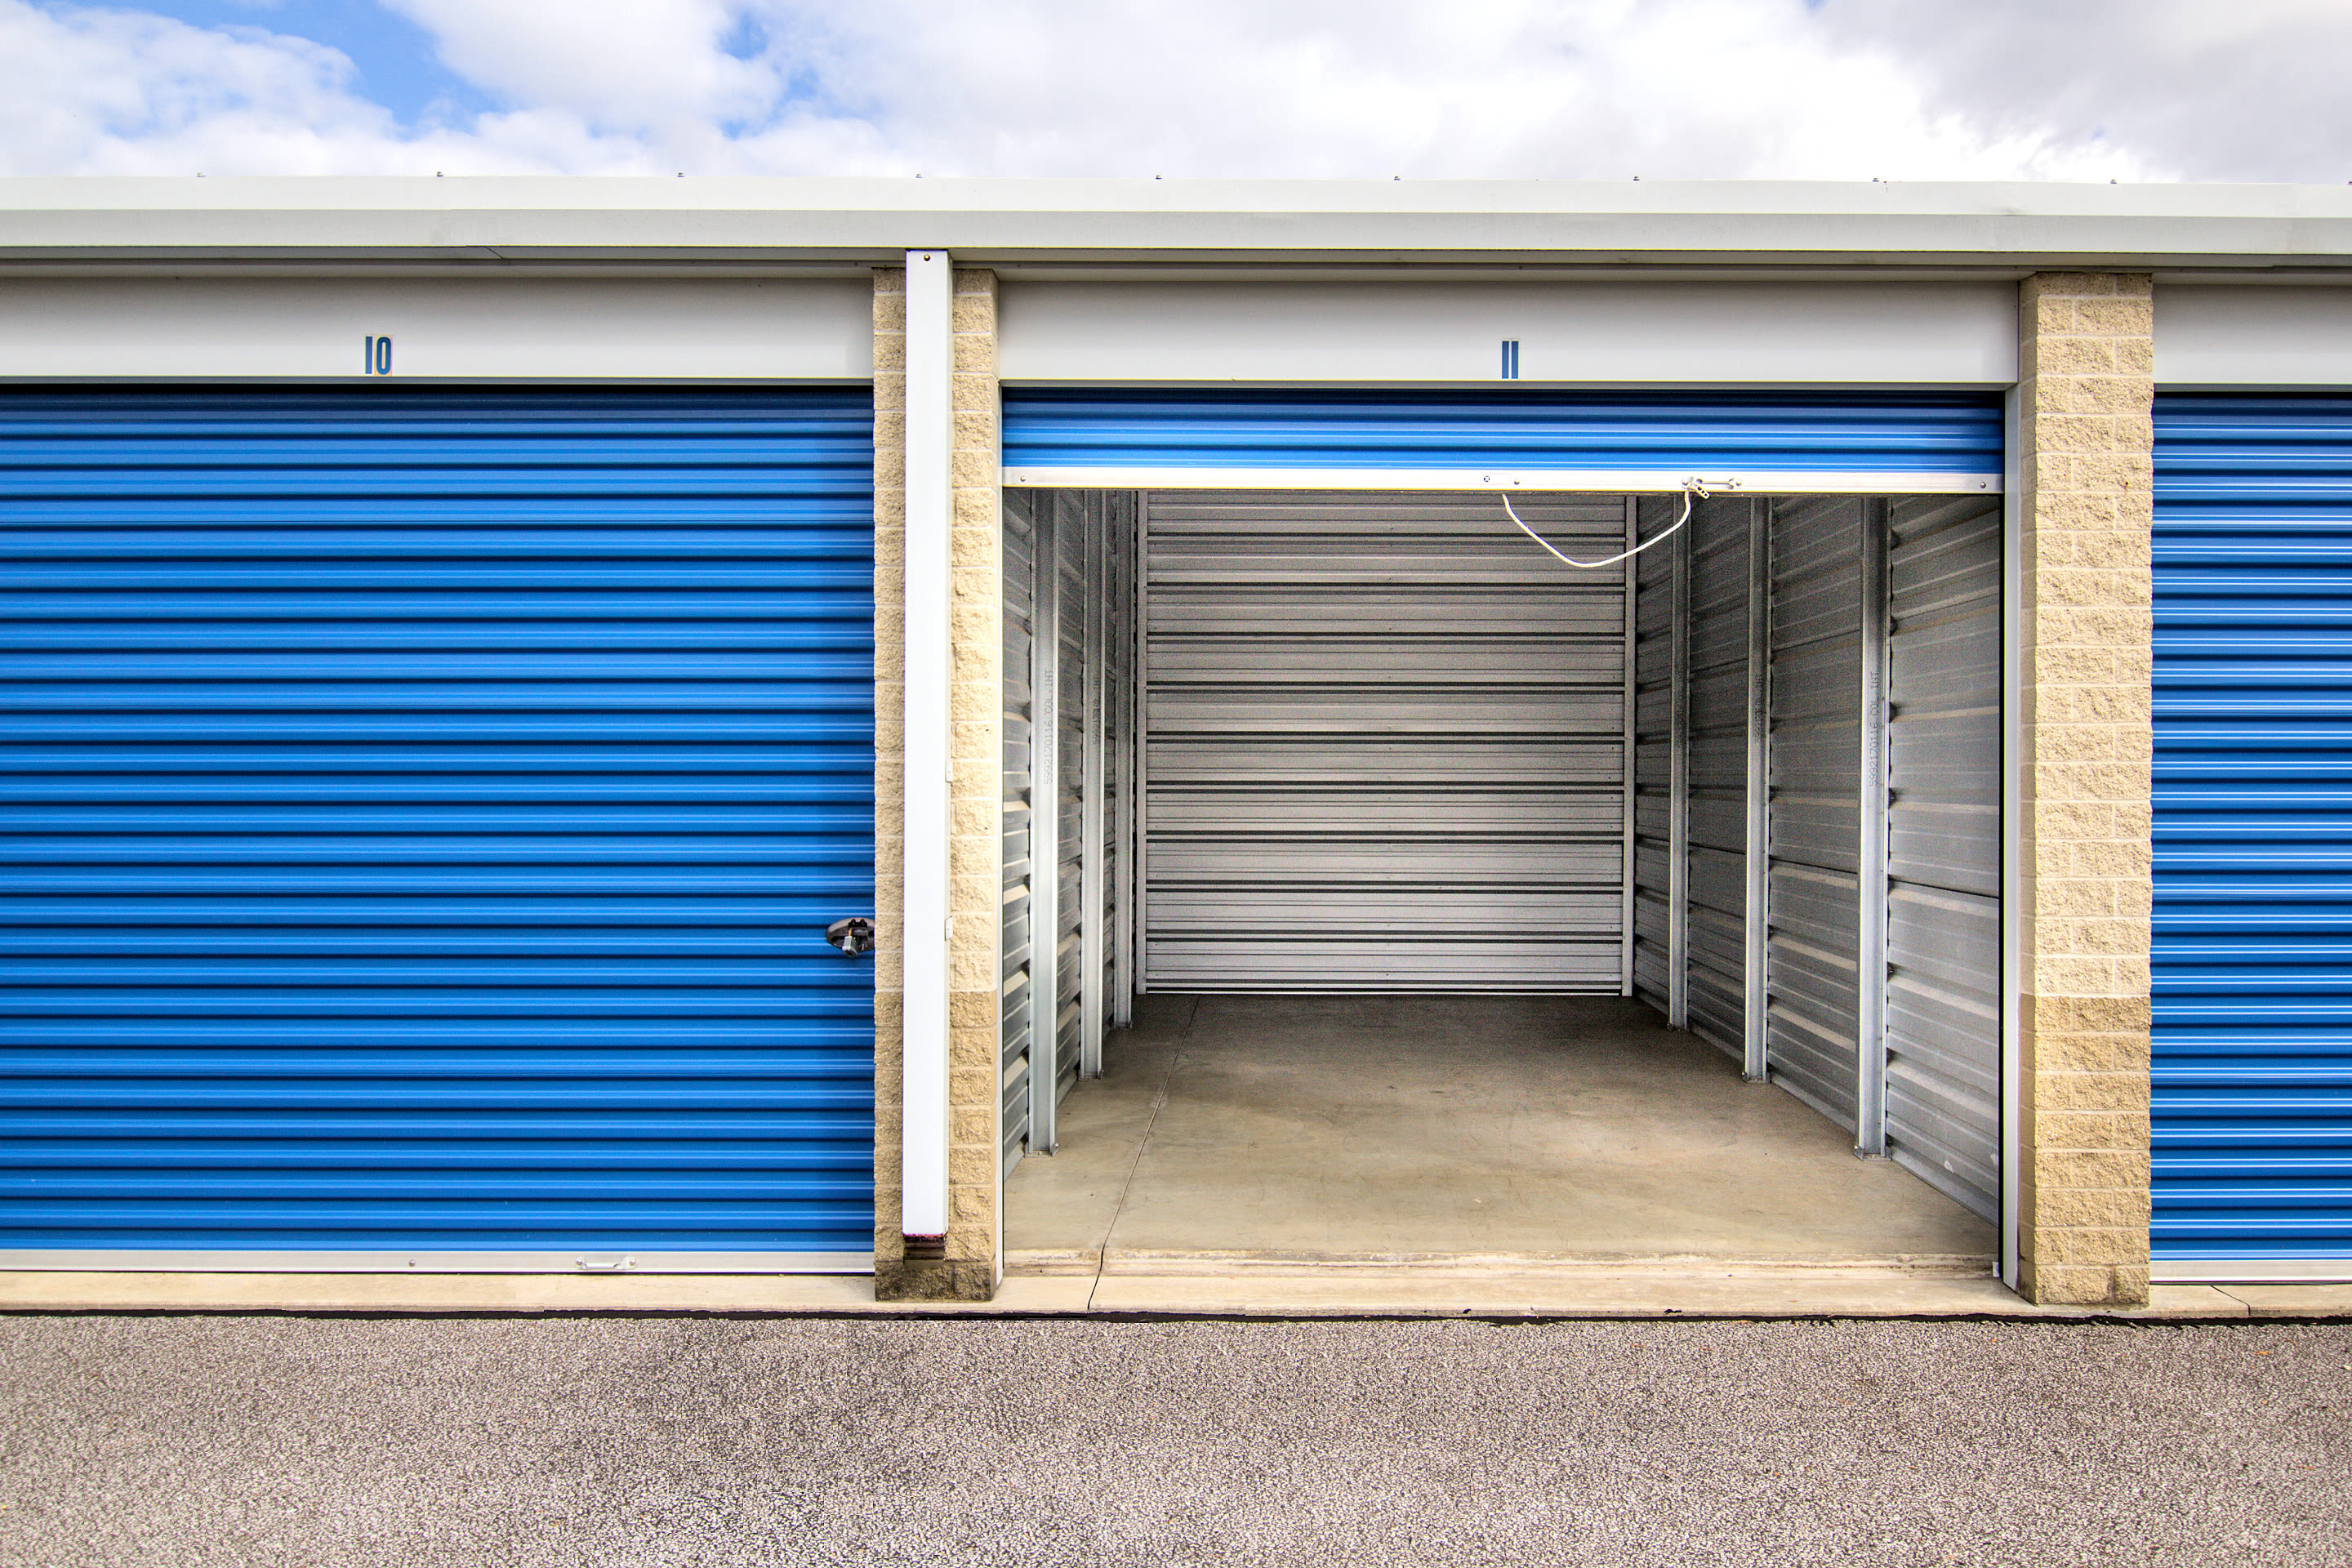 Large drive-up unit at Tyler Self Storage in Mentor, Ohio